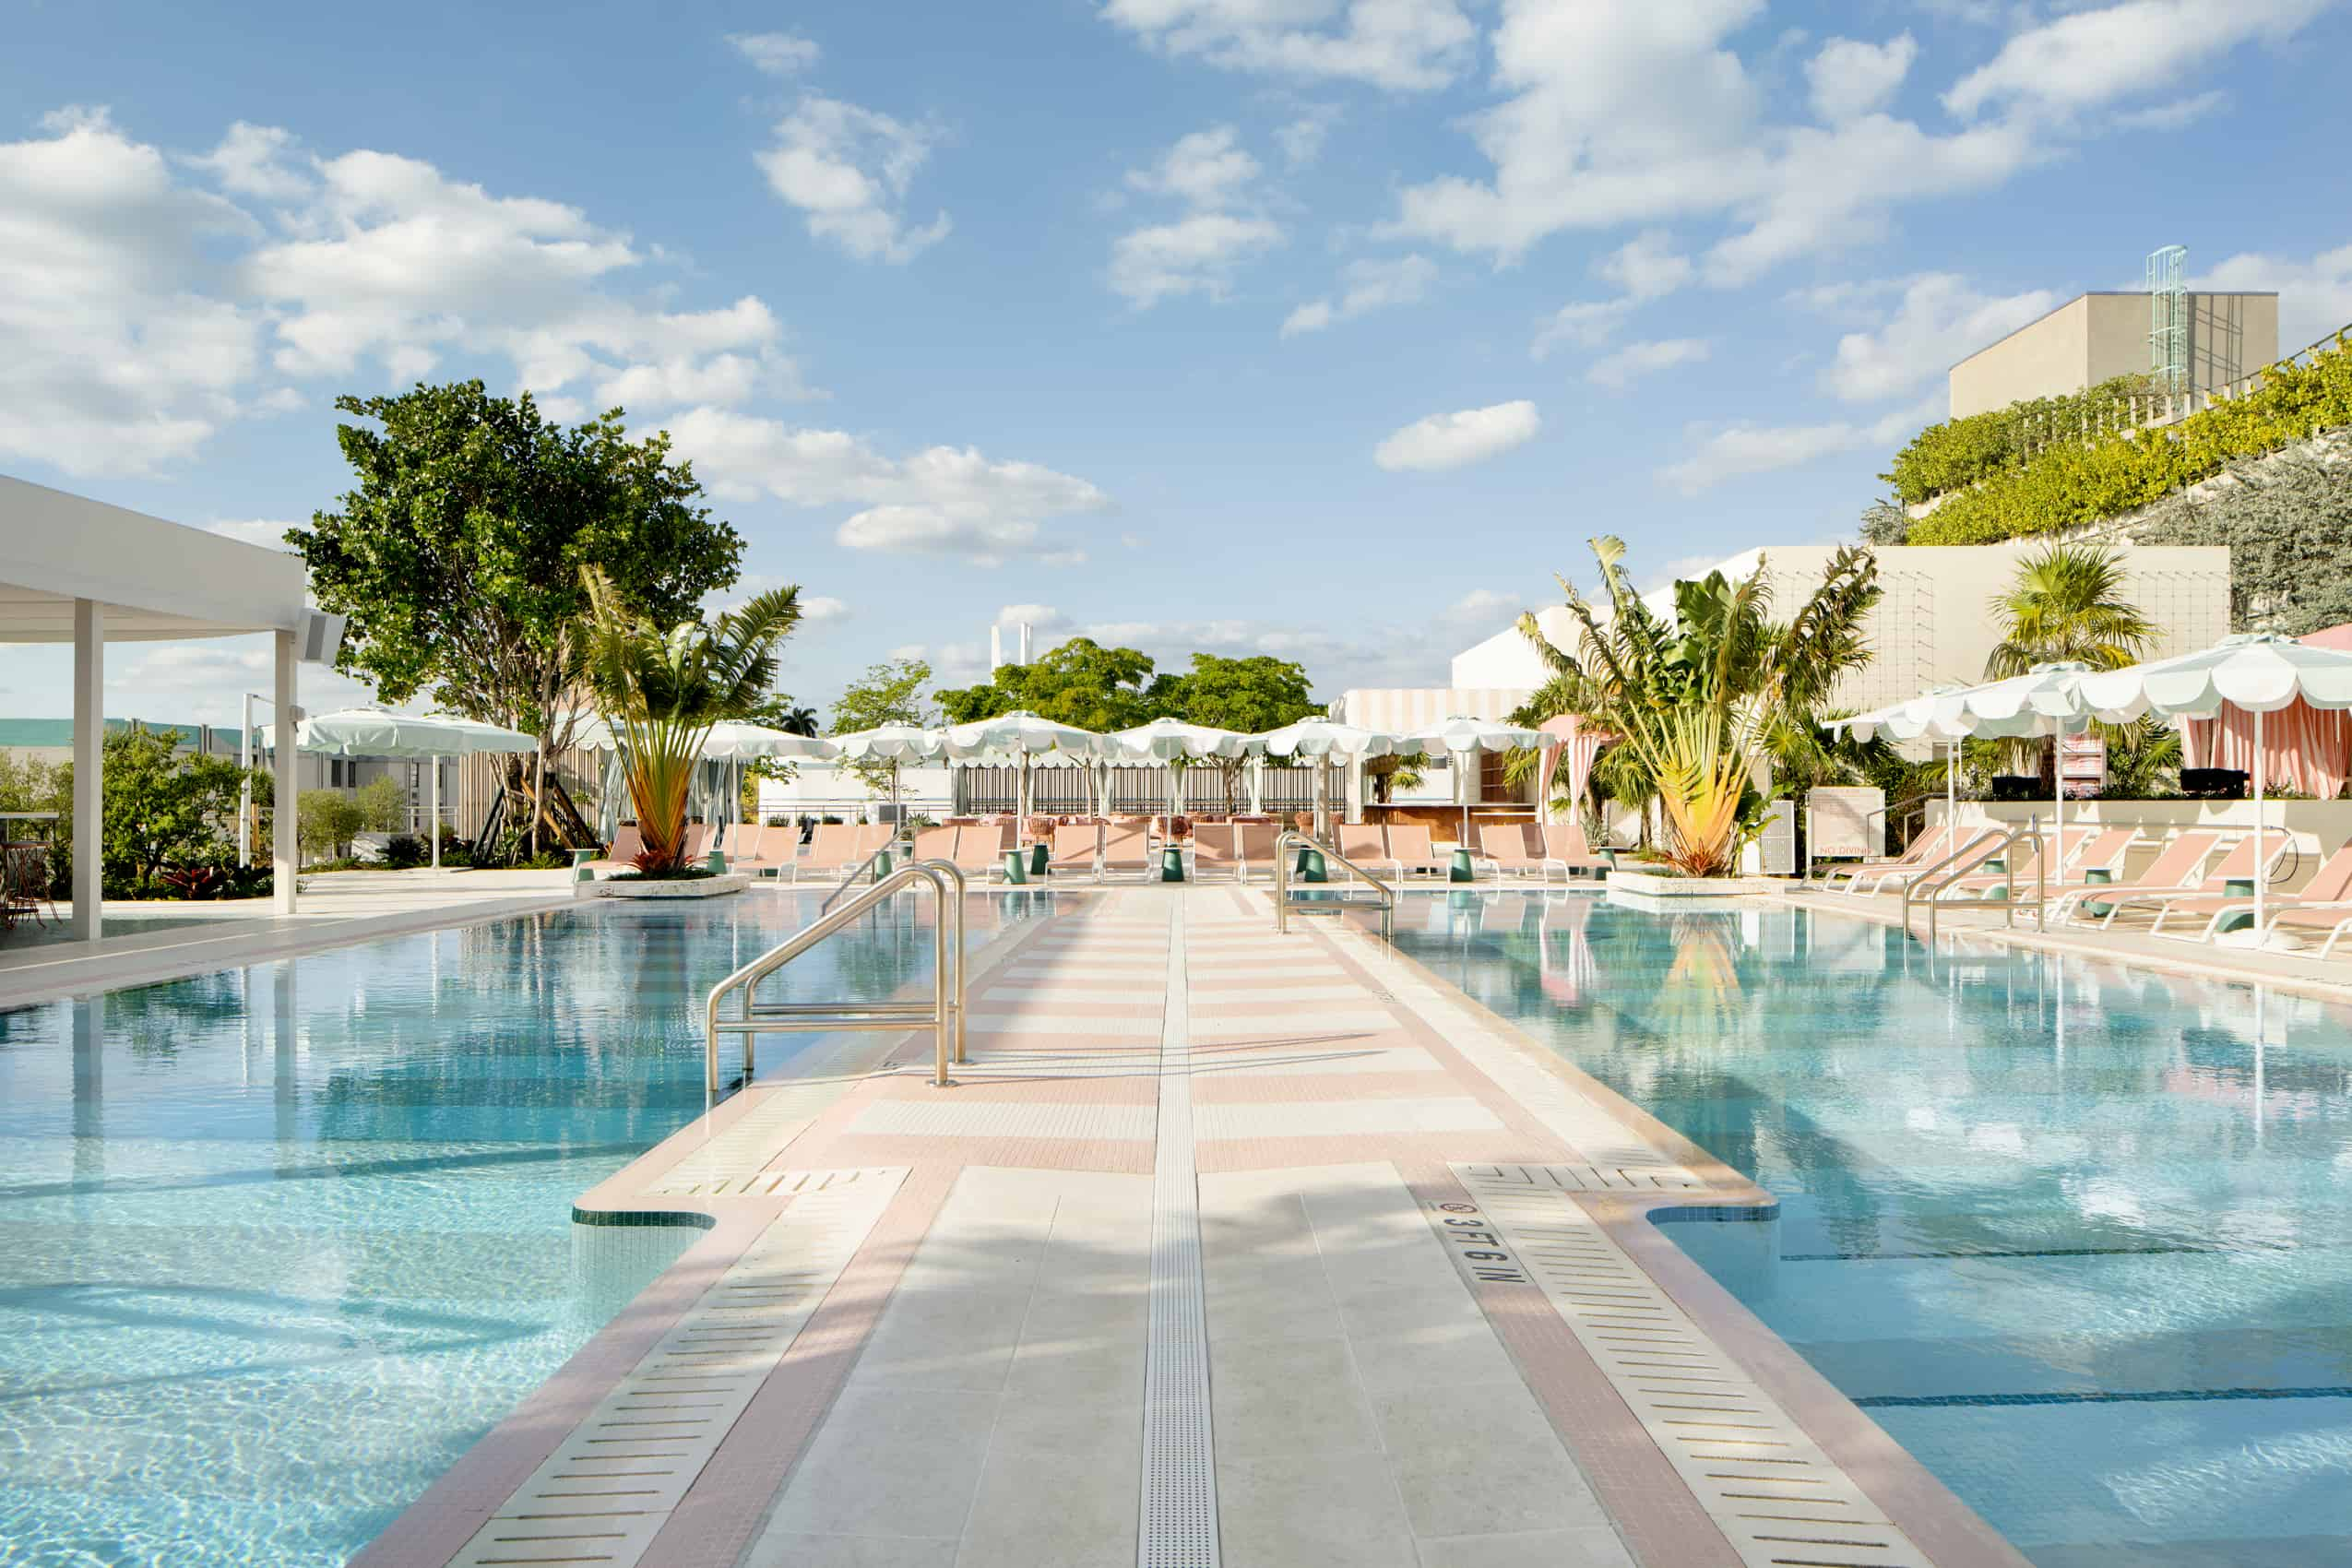 Pool deck at Good Time Hotel Miami